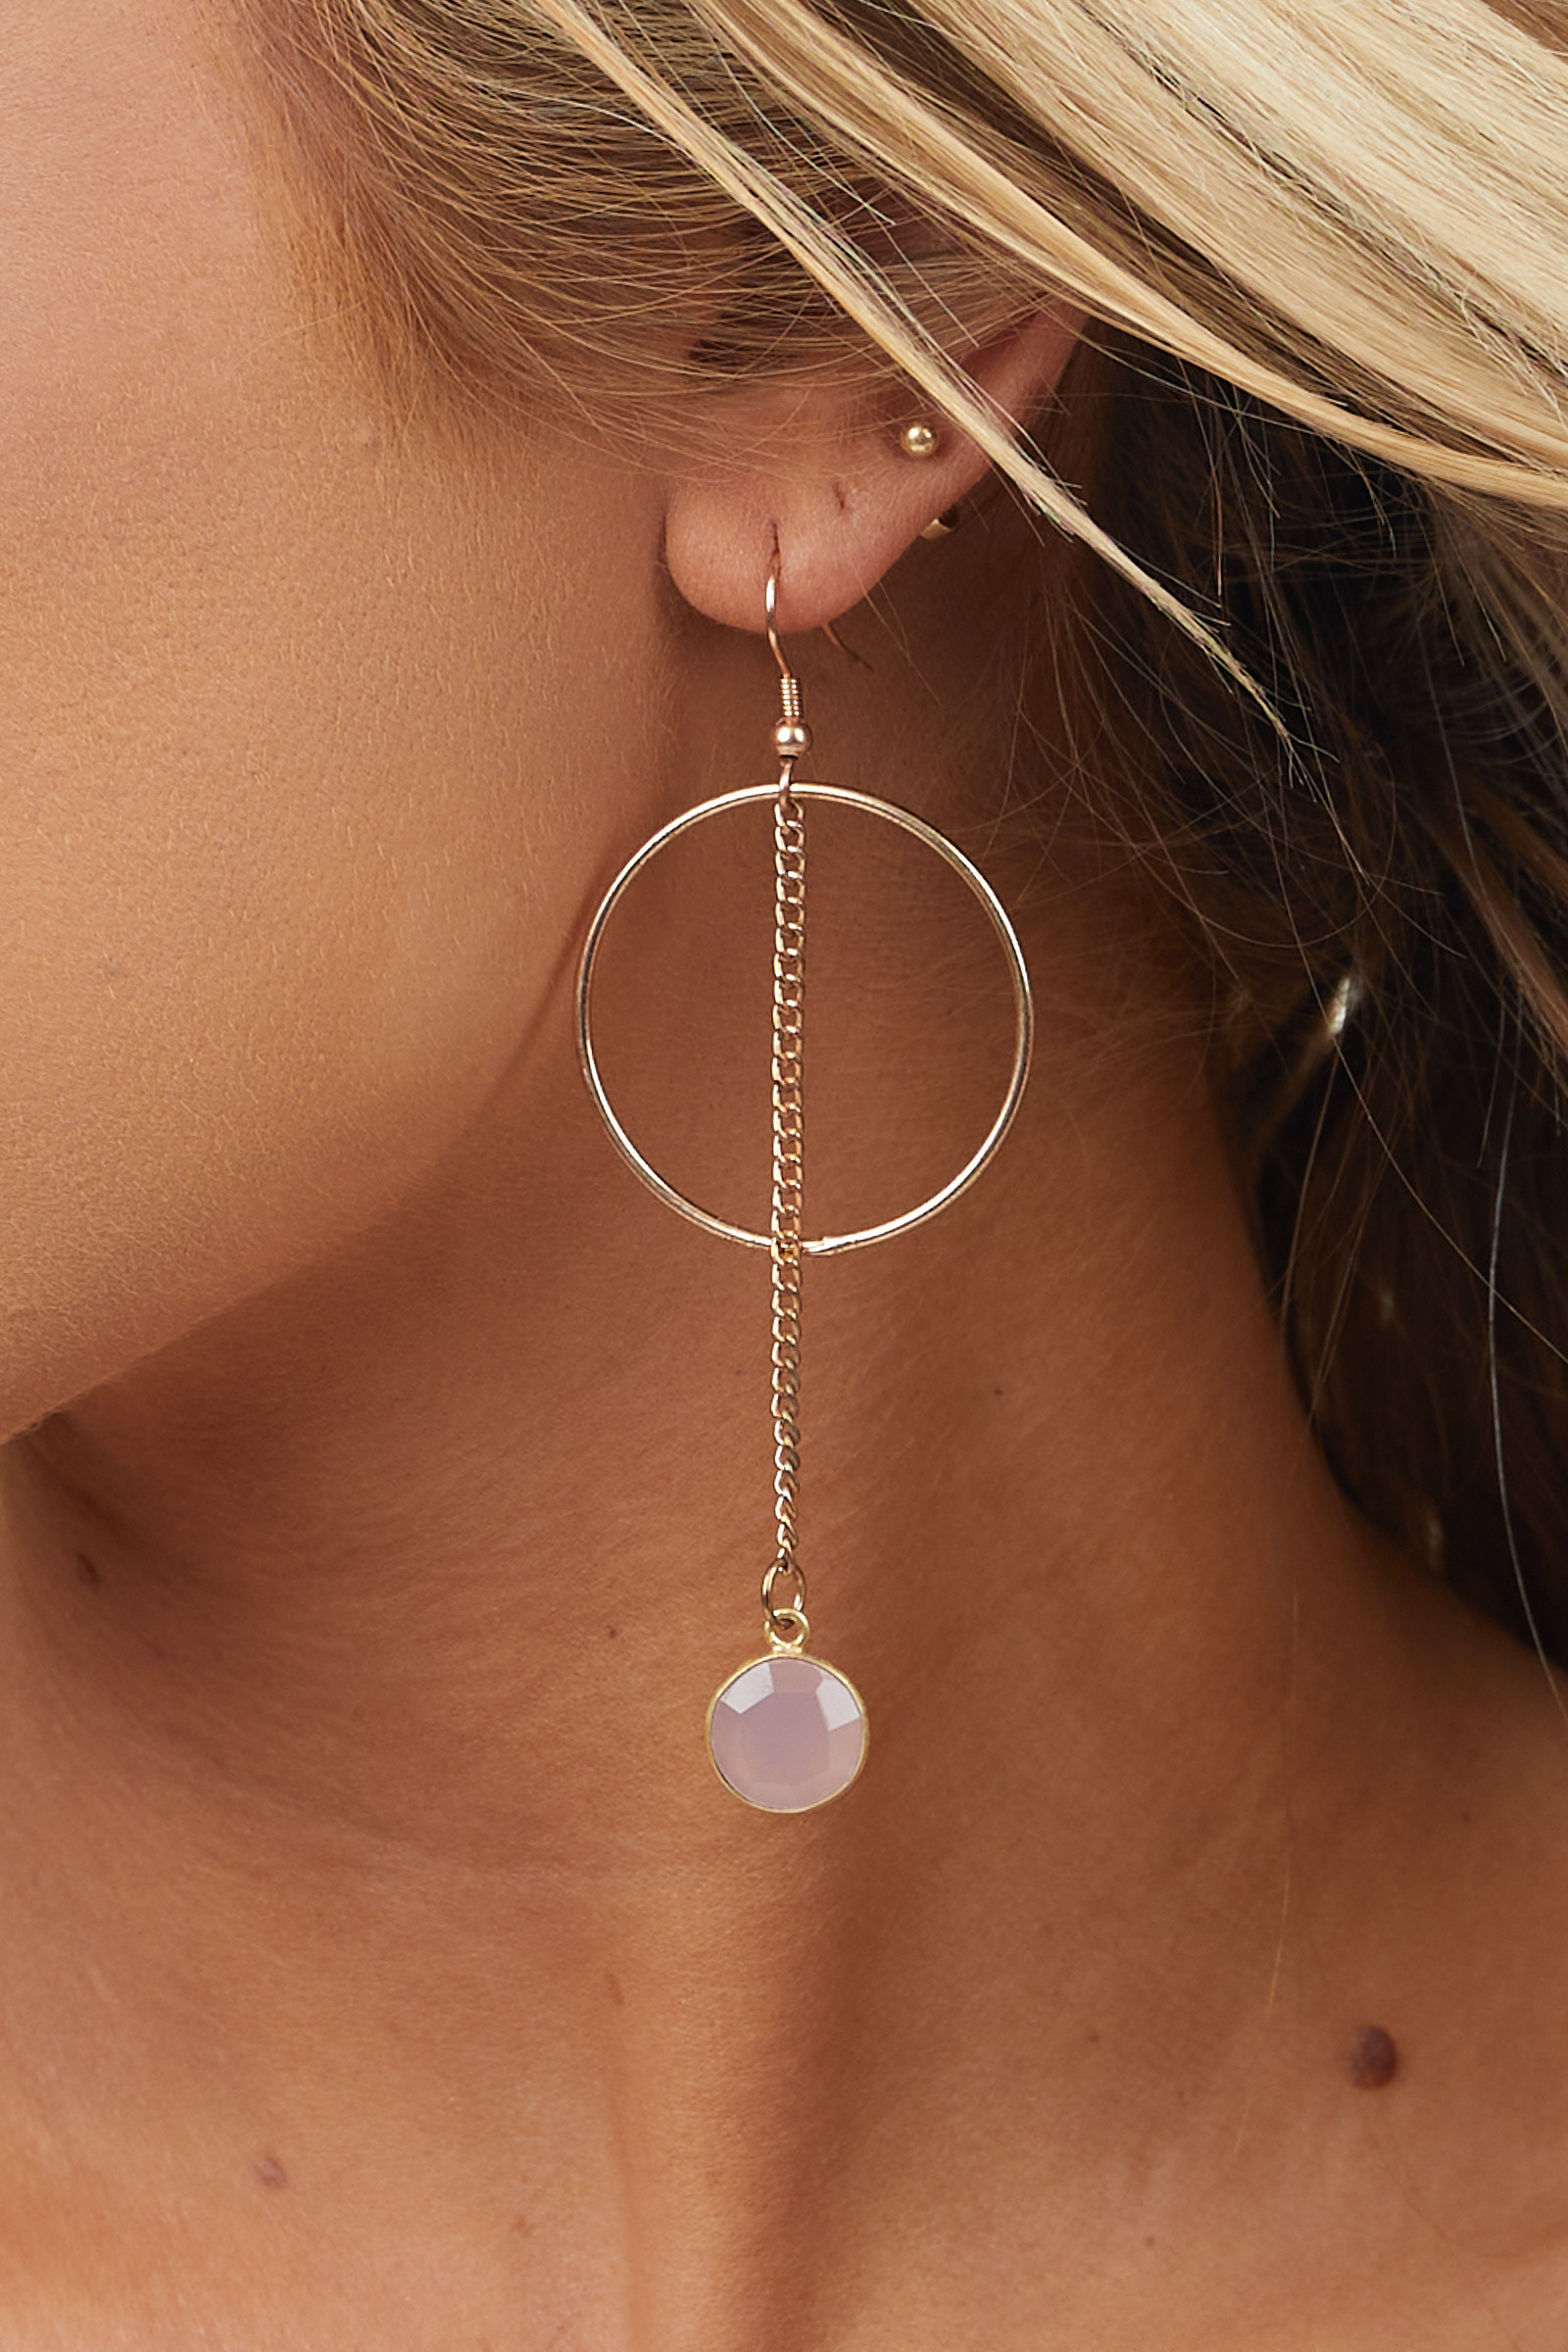 Gold Hoop Earrings with Chain and Blush Stone Detail